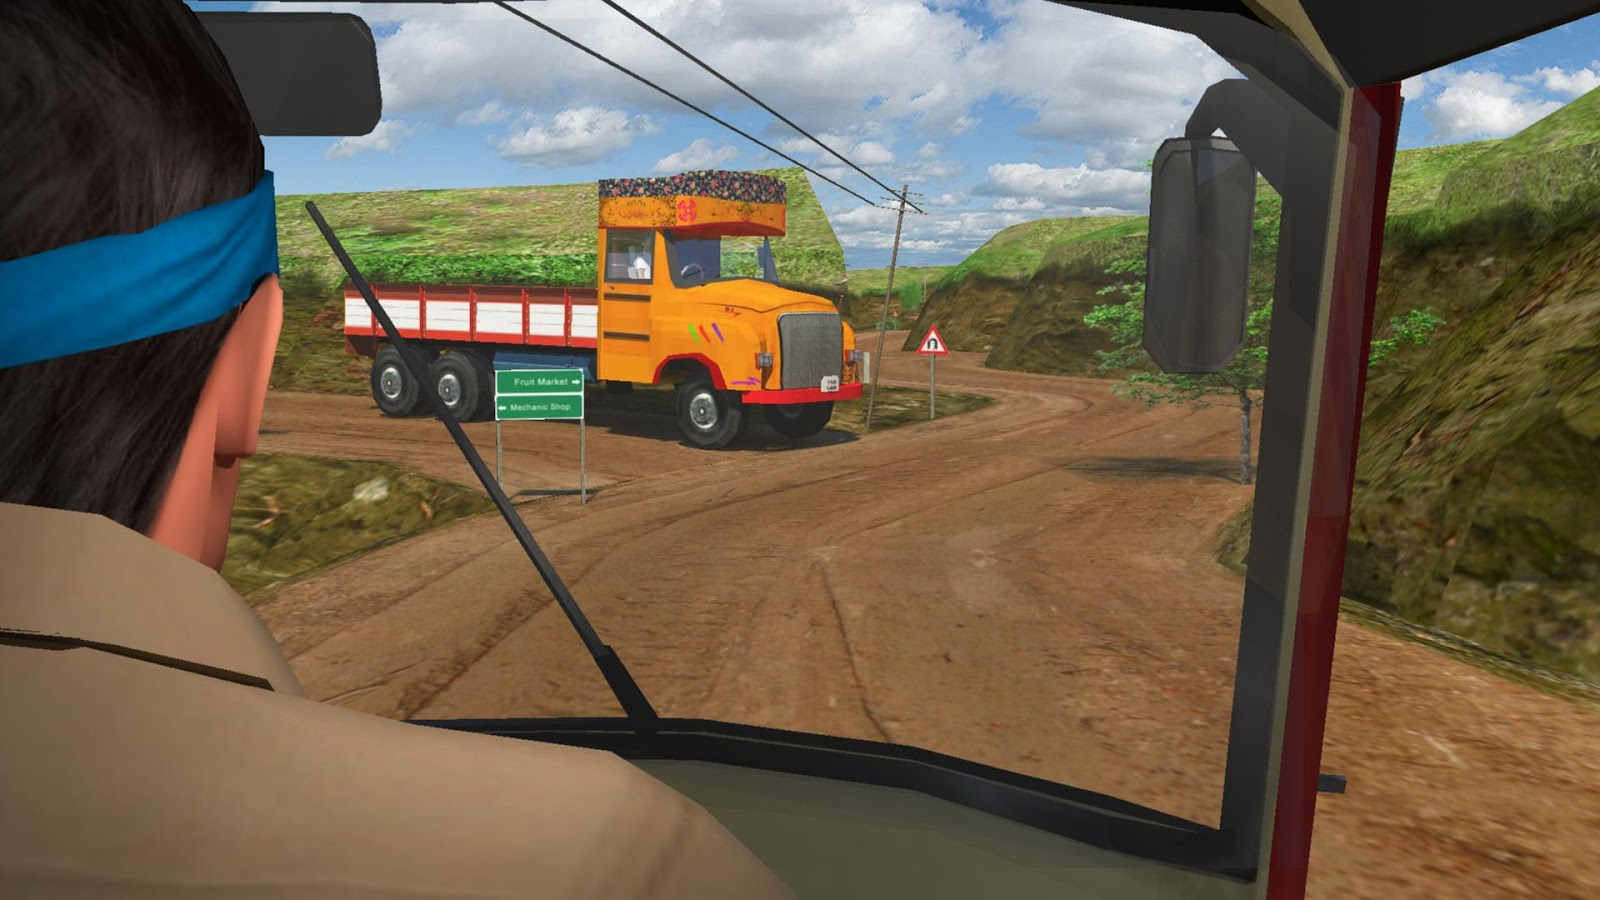 Offroad Tourist Tuk 14 Apk Download Android Simulation Games Or You Go For Instance To The Electronic Shop Downstairs At Tukcom Screenshot 10